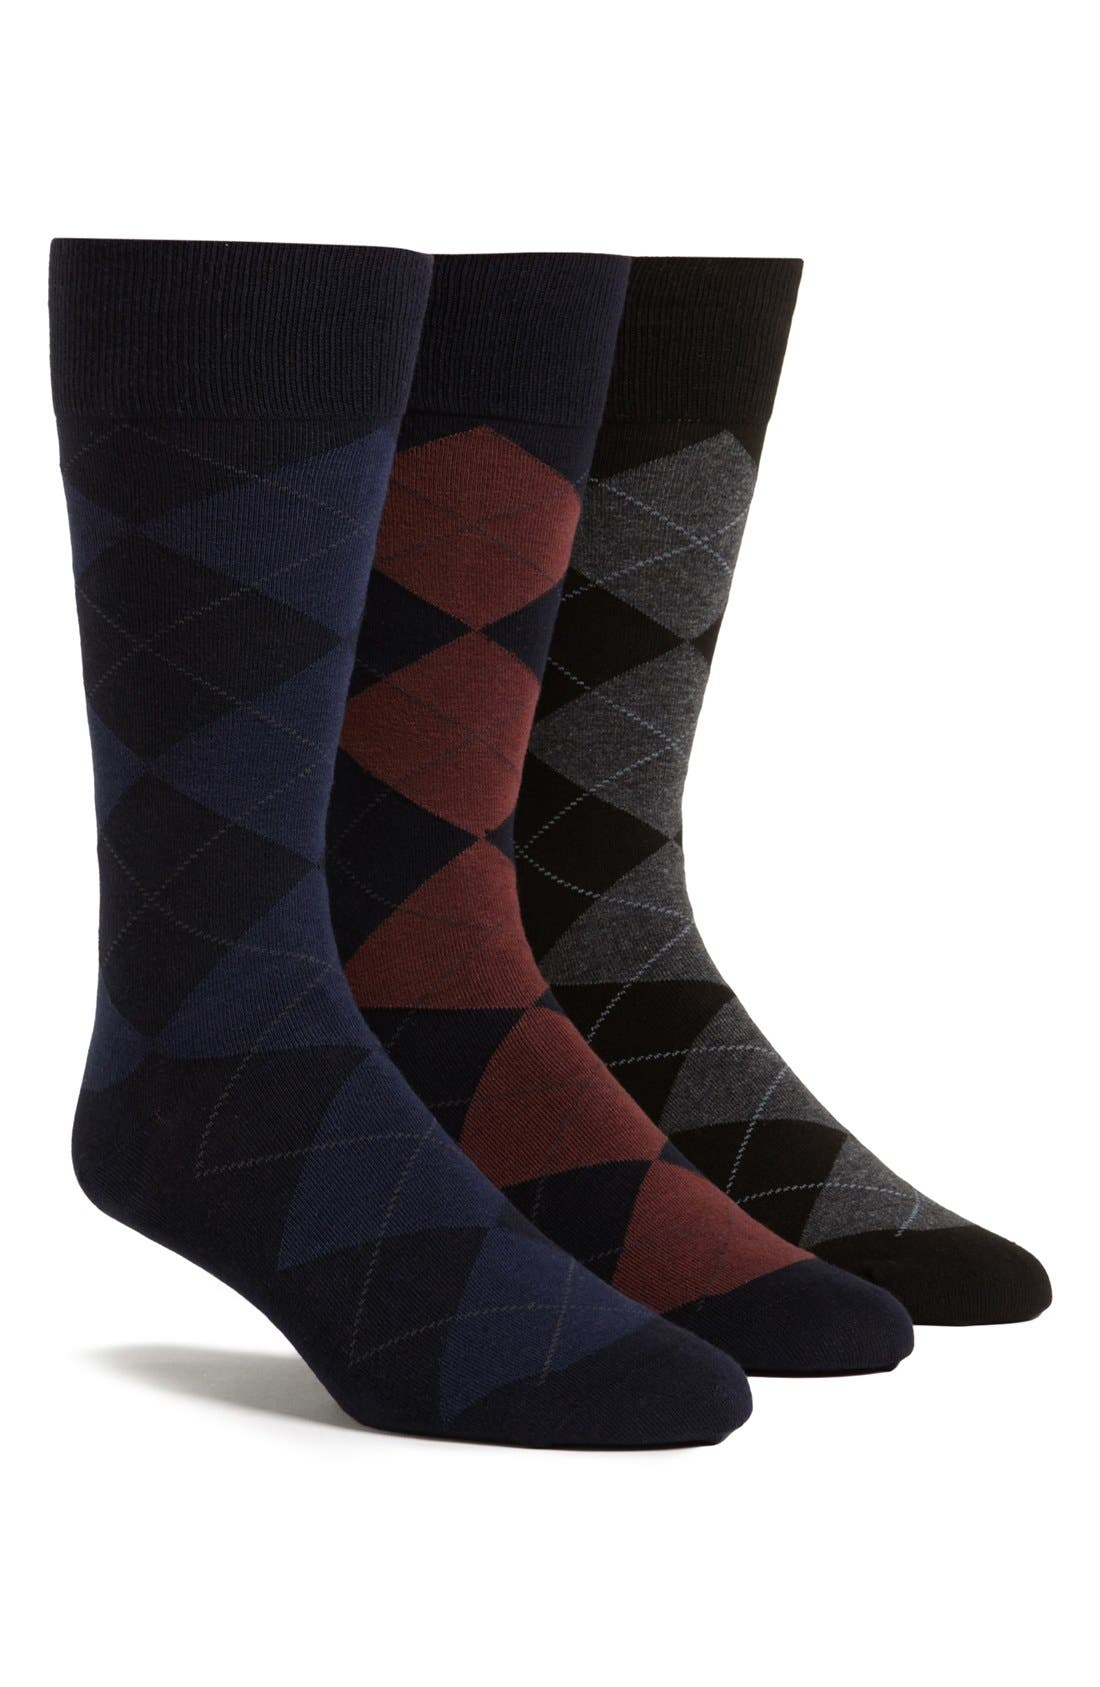 Alternate Image 1 Selected - Polo Ralph Lauren 3-Pack Argyle Socks